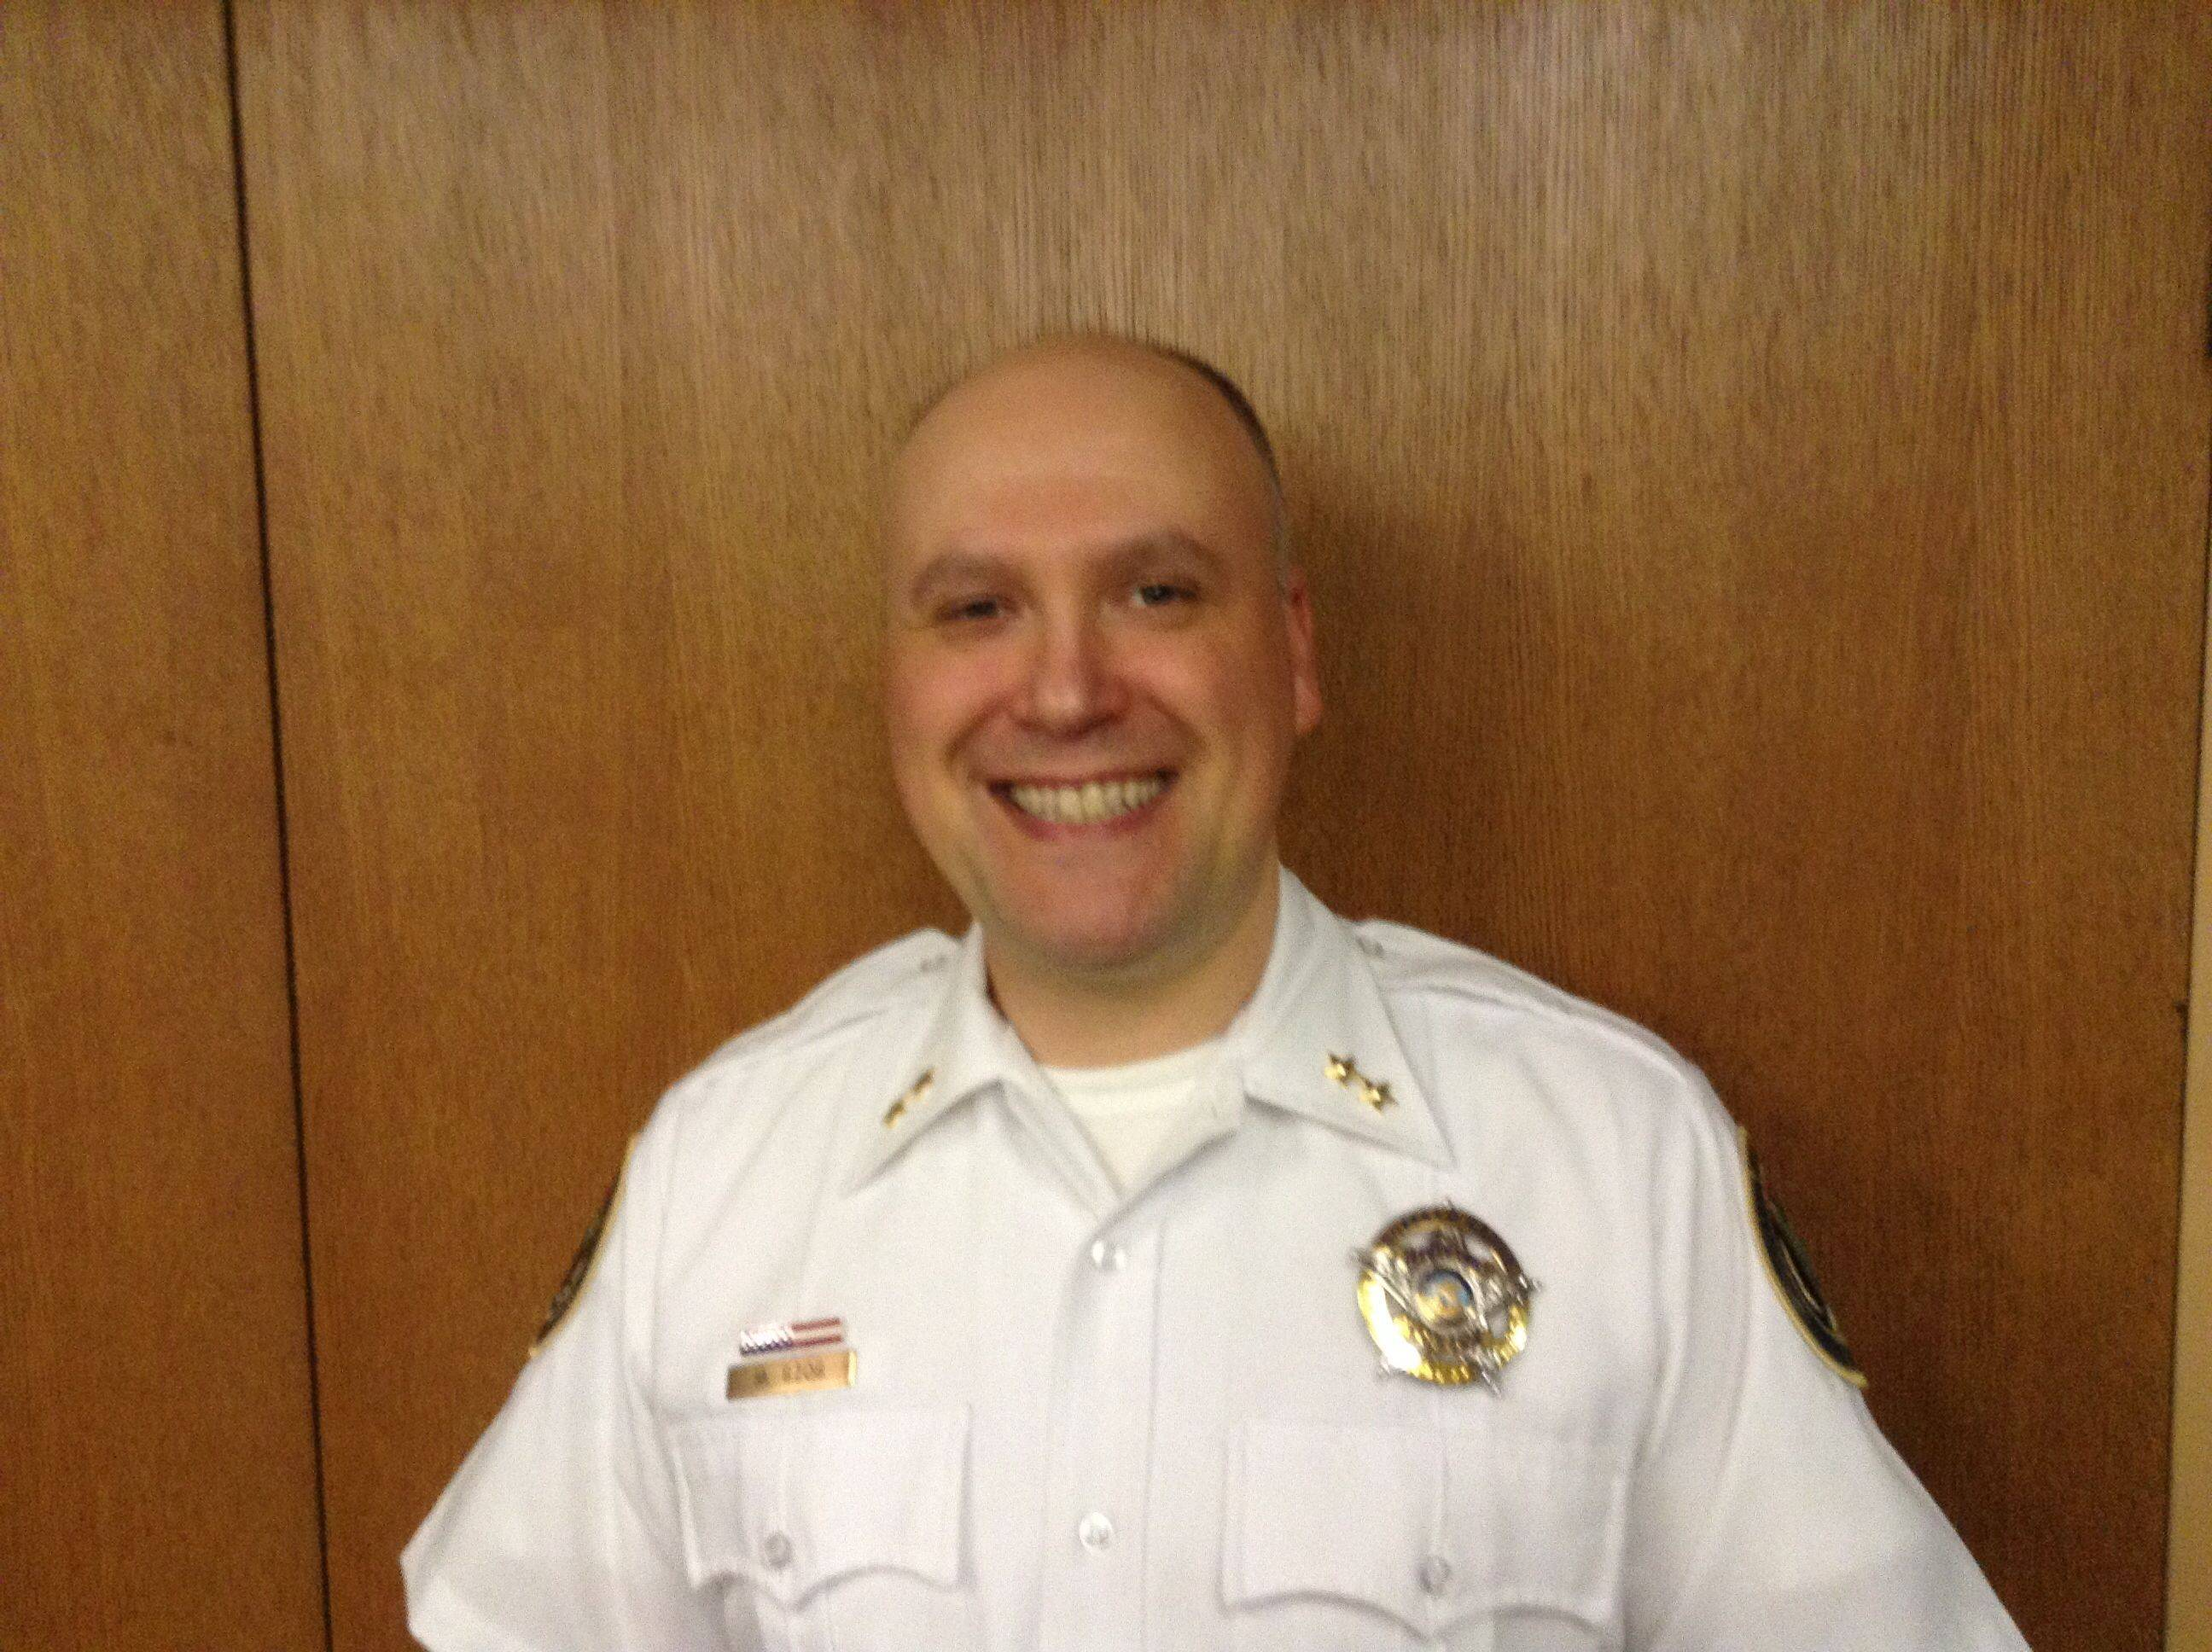 Buffalo Grove Deputy Police Chief Mike Szos